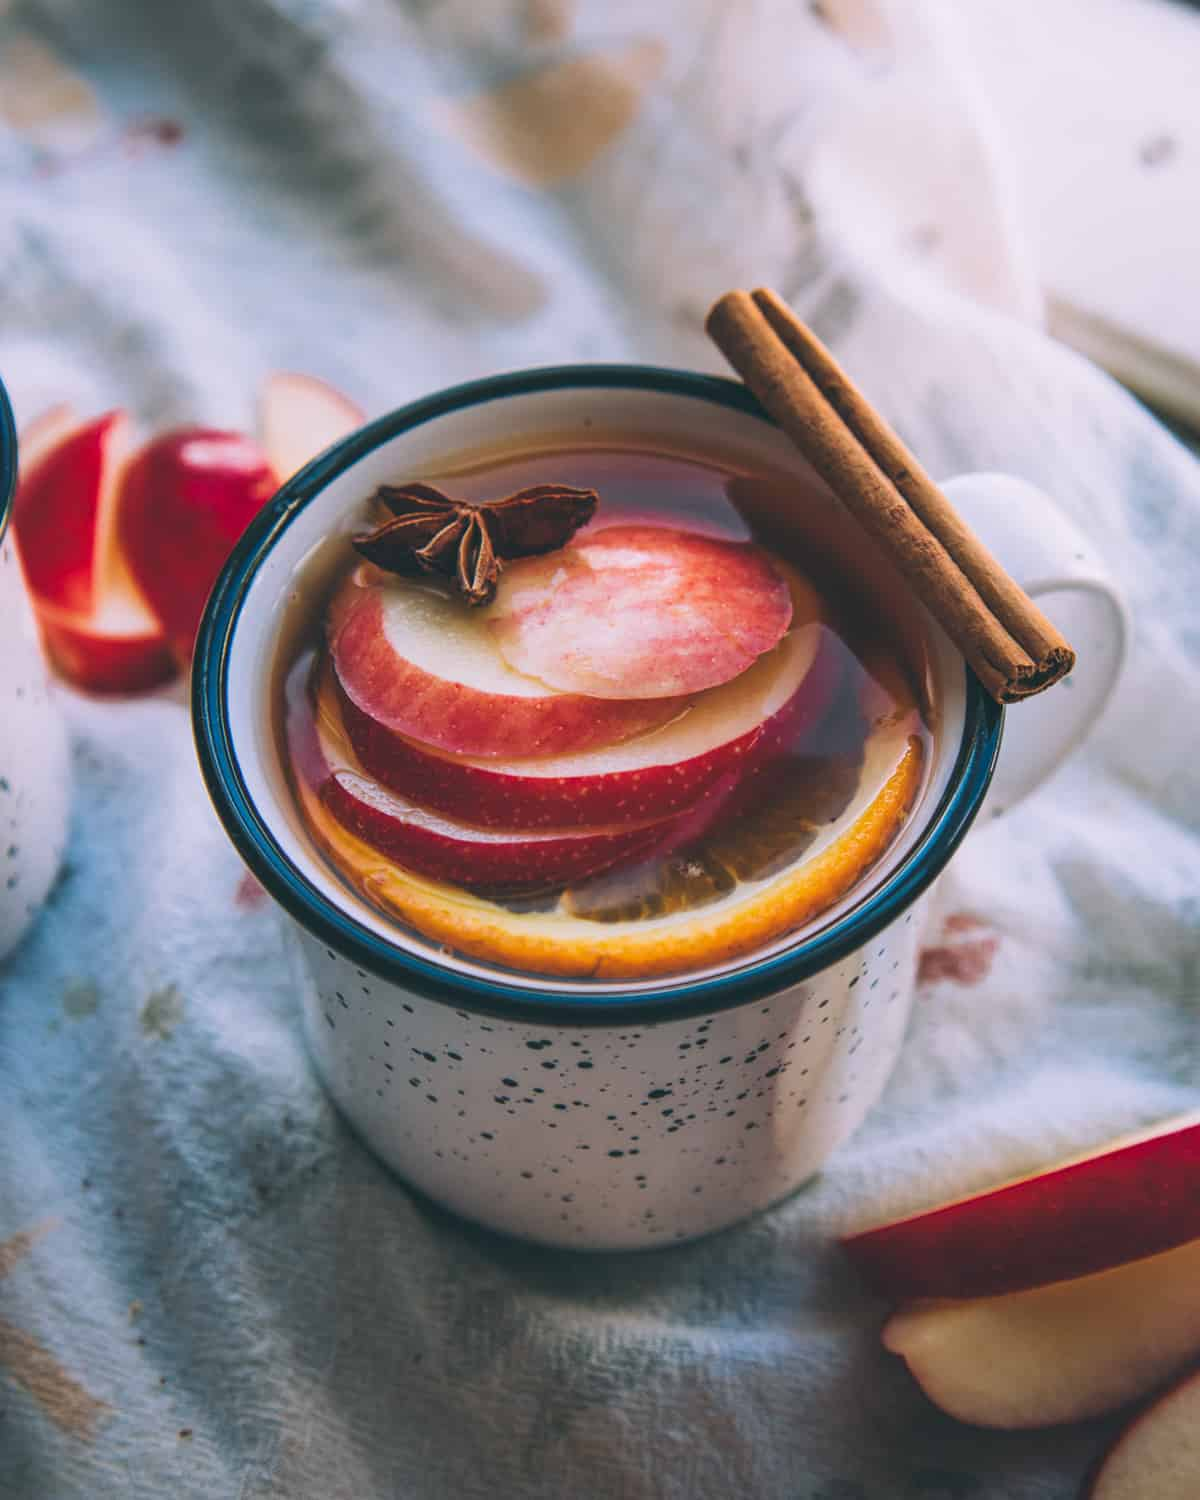 a mug of mulled hard cider with apples and a cinnamon stick for garnish